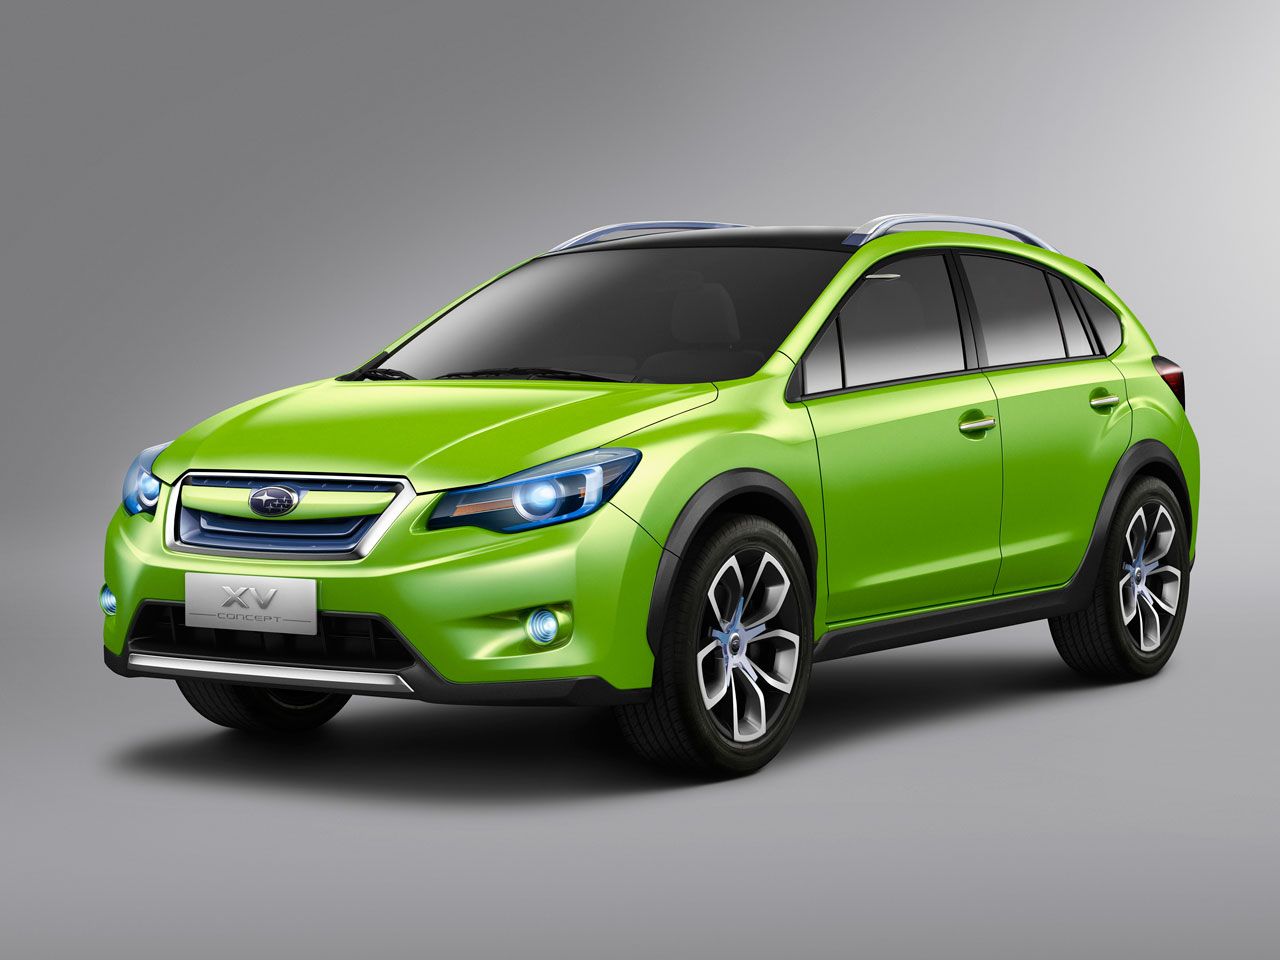 Subaru xv photo - 1